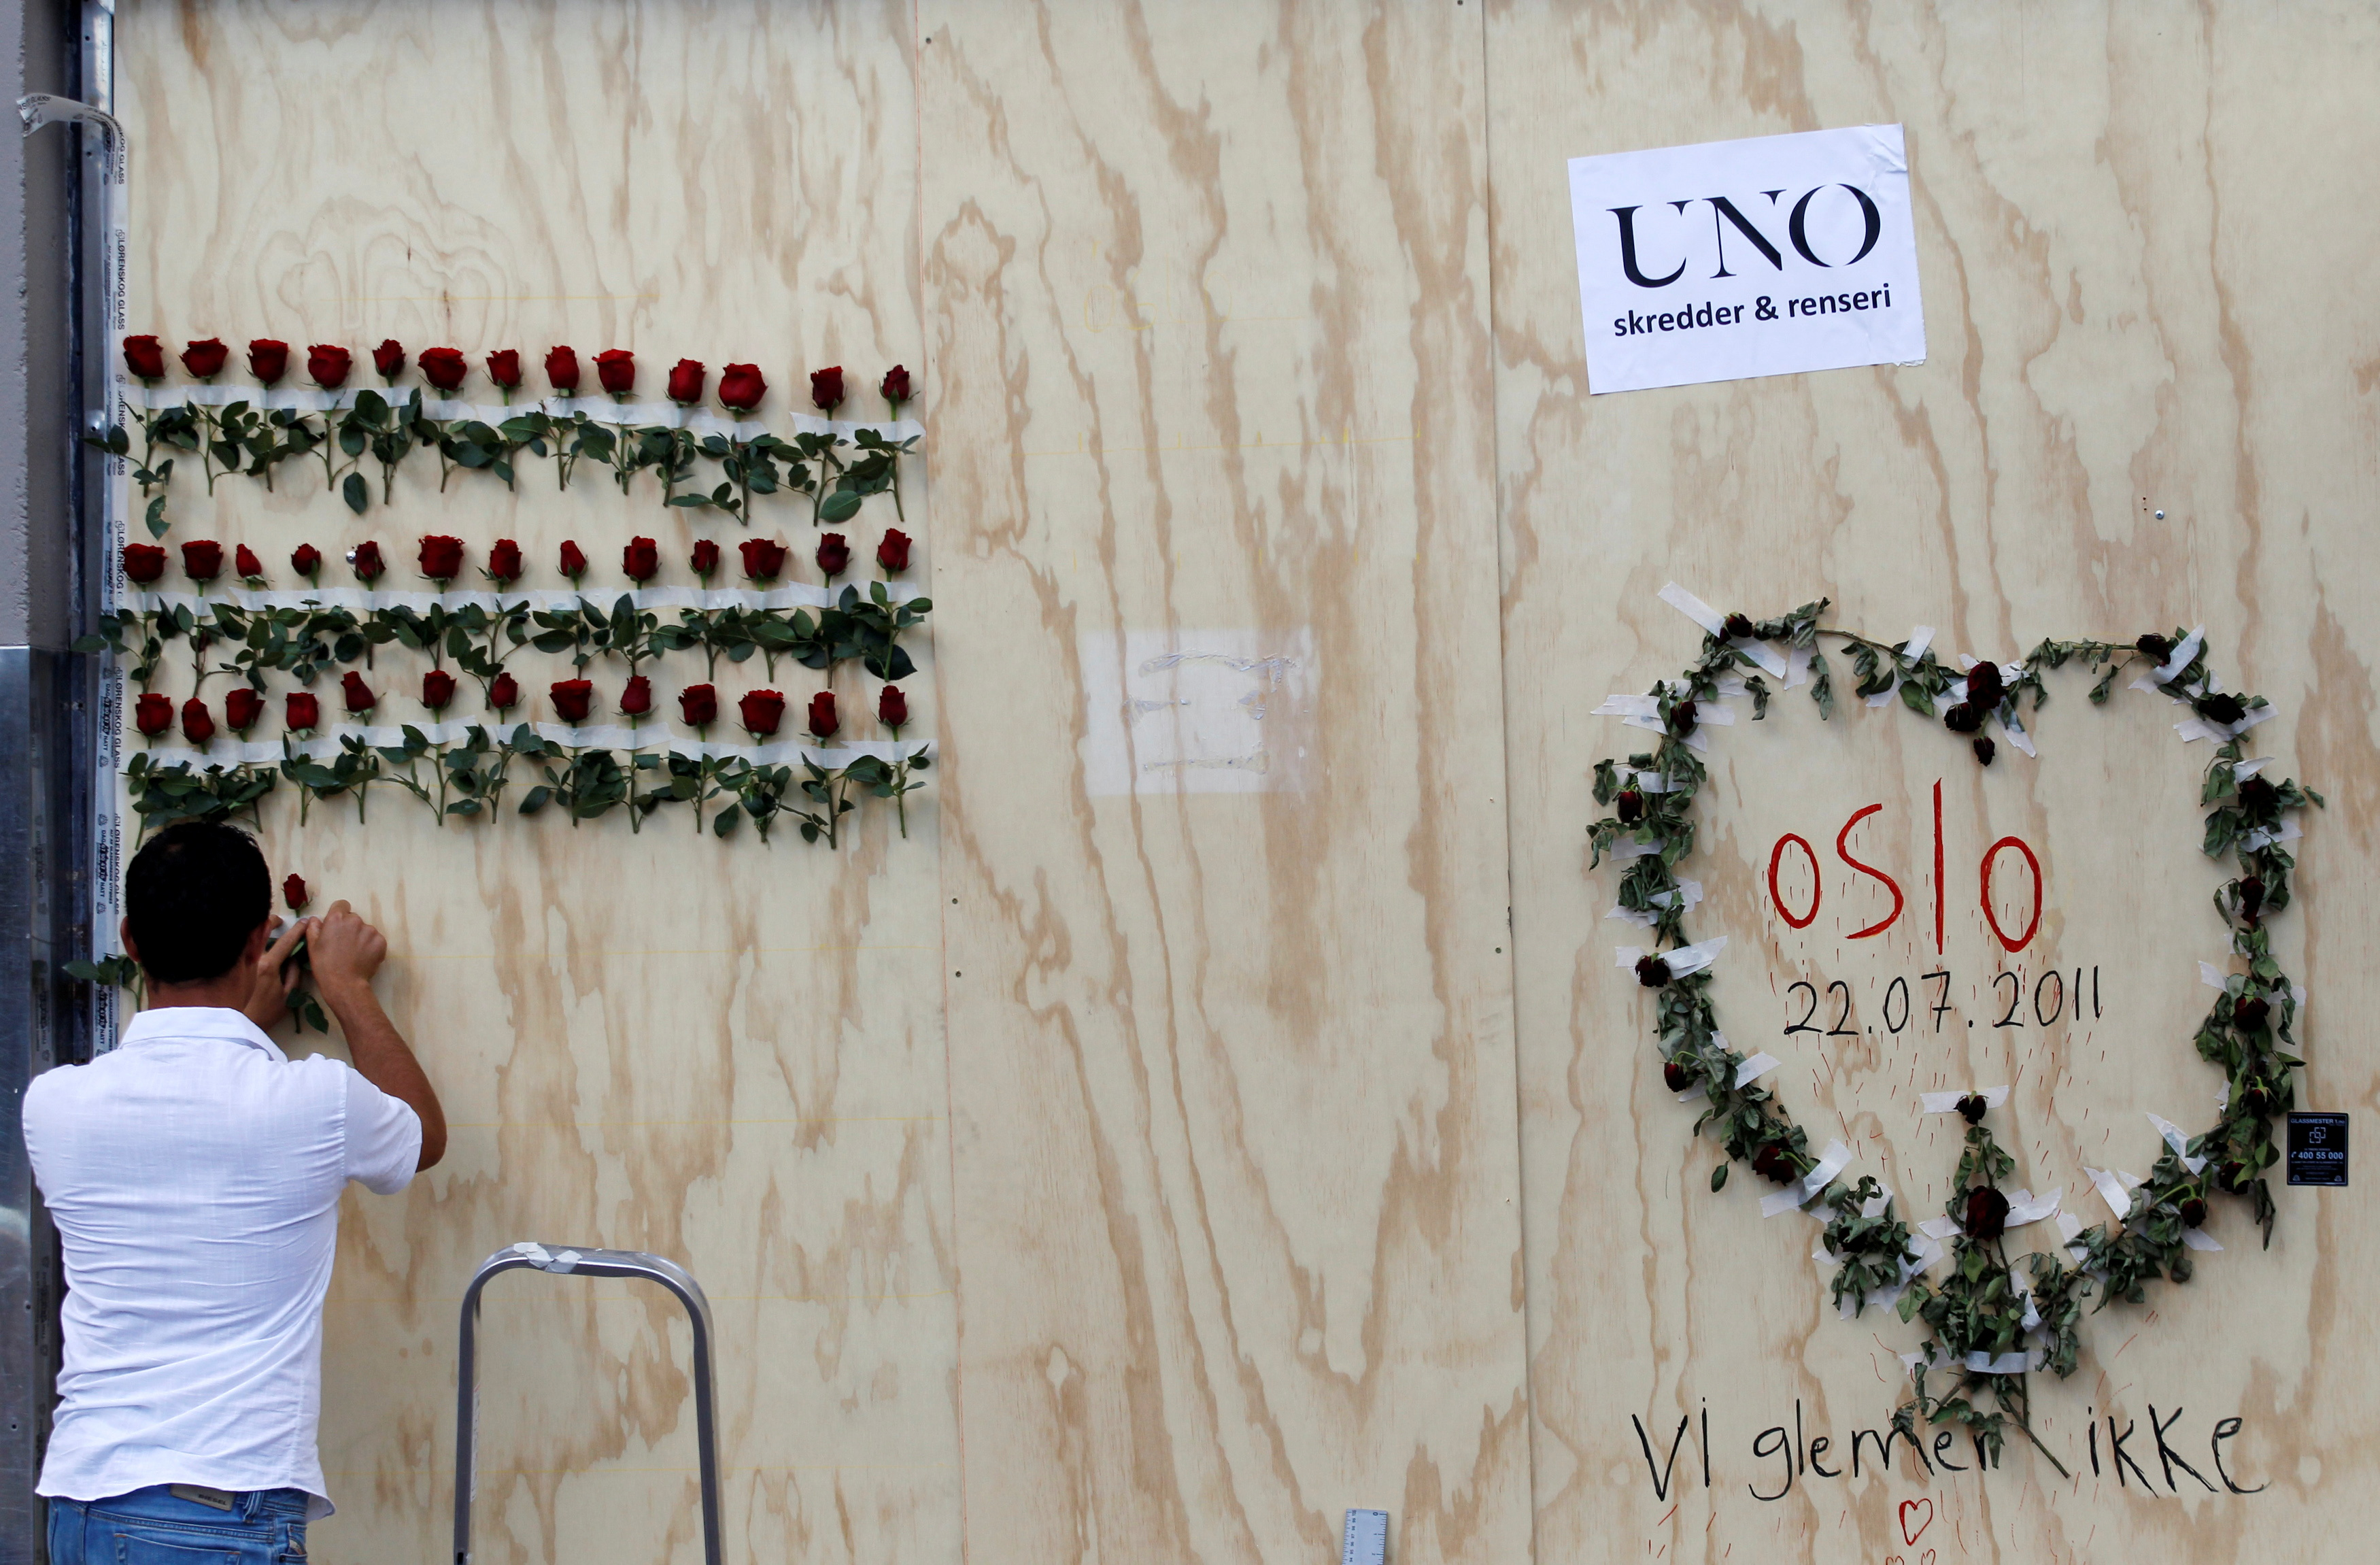 A man arranges flowers next to a graffitti marking a bomb attack last Friday, in the centre of Oslo July 28, 2011. Norwegian police on Thursday ended a six-day search for bodies on the island where anti-Islamist extremist Anders Behring Breivik killed 68 people and say they are increasingly certain he acted alone. Breivik, 32, killed a total of 76 people in a bomb attack in central Oslo followed by the shooting rampage at the island summer camp for the ruling Labour Party's youth wing. REUTERS/Stoyan Nenov/File Photo